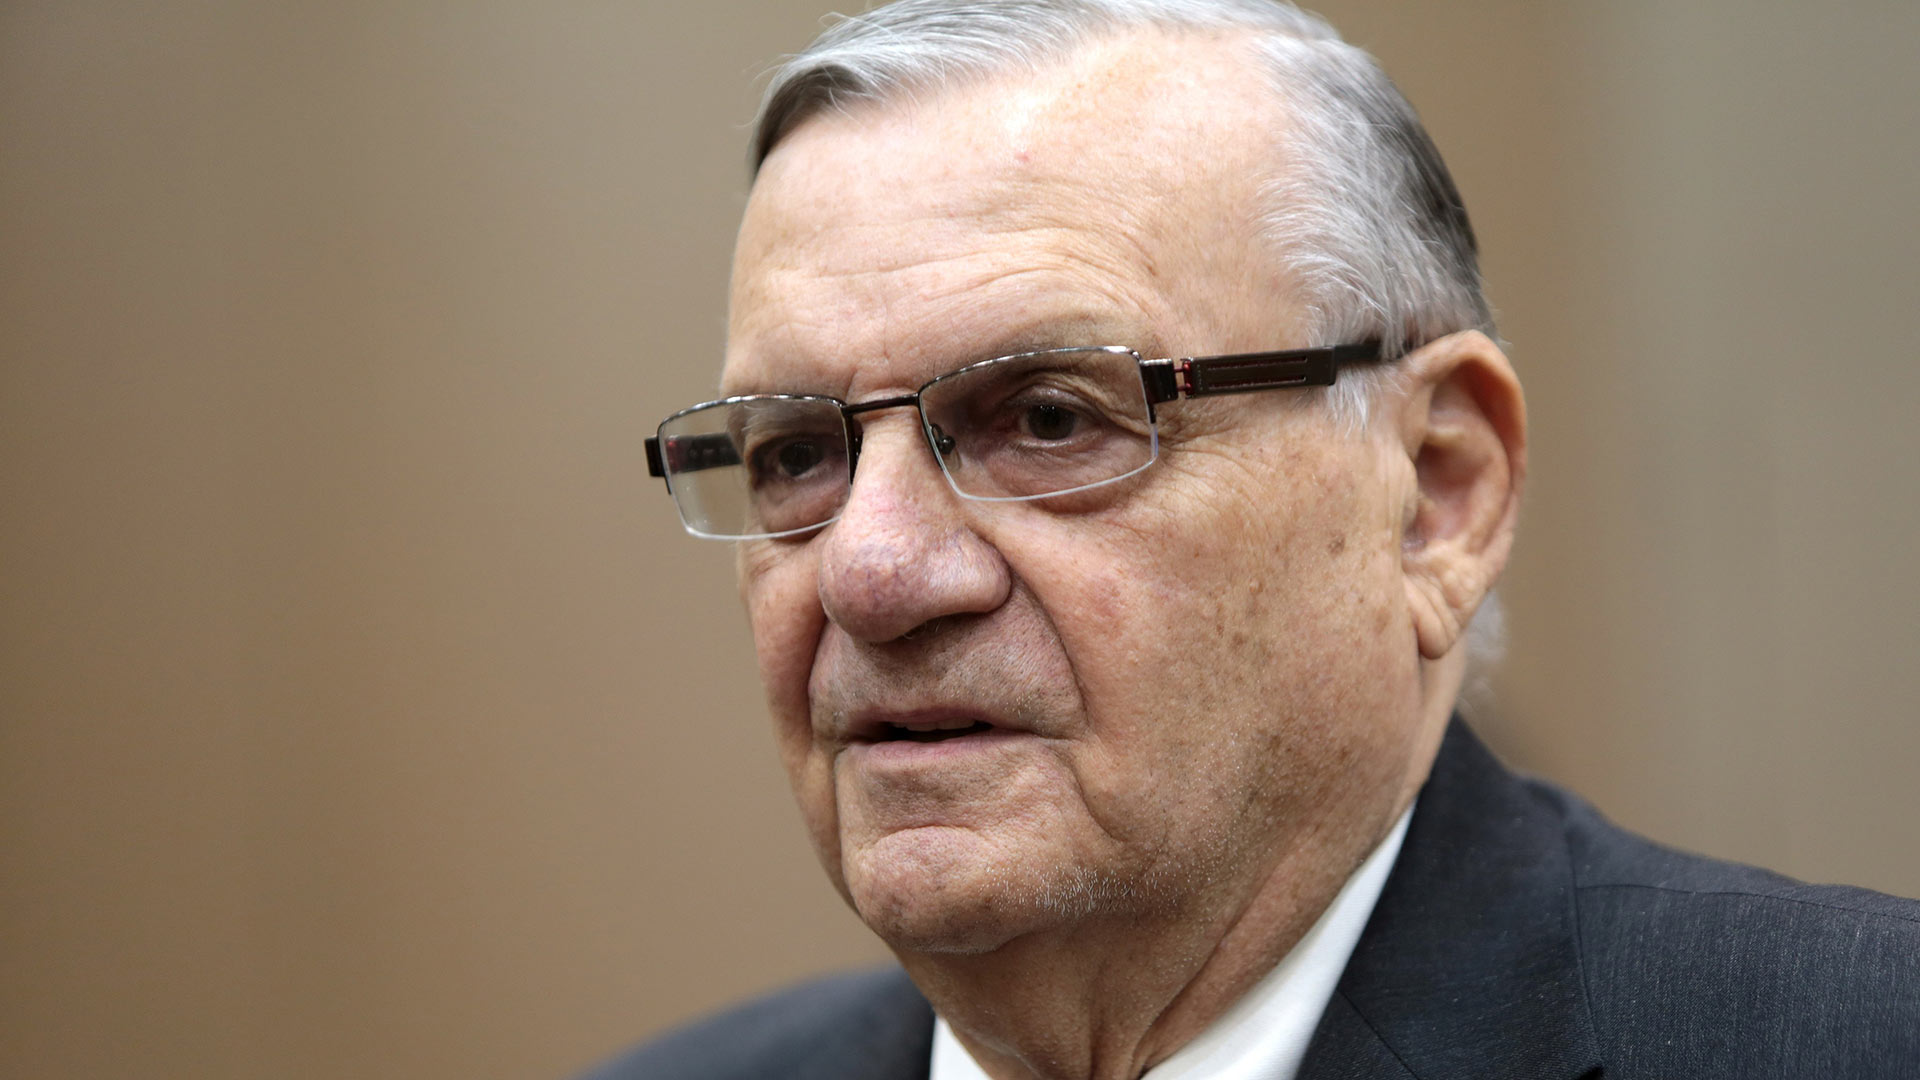 Former Maricopa County Sheriff Joe Arpaio in August 2016.